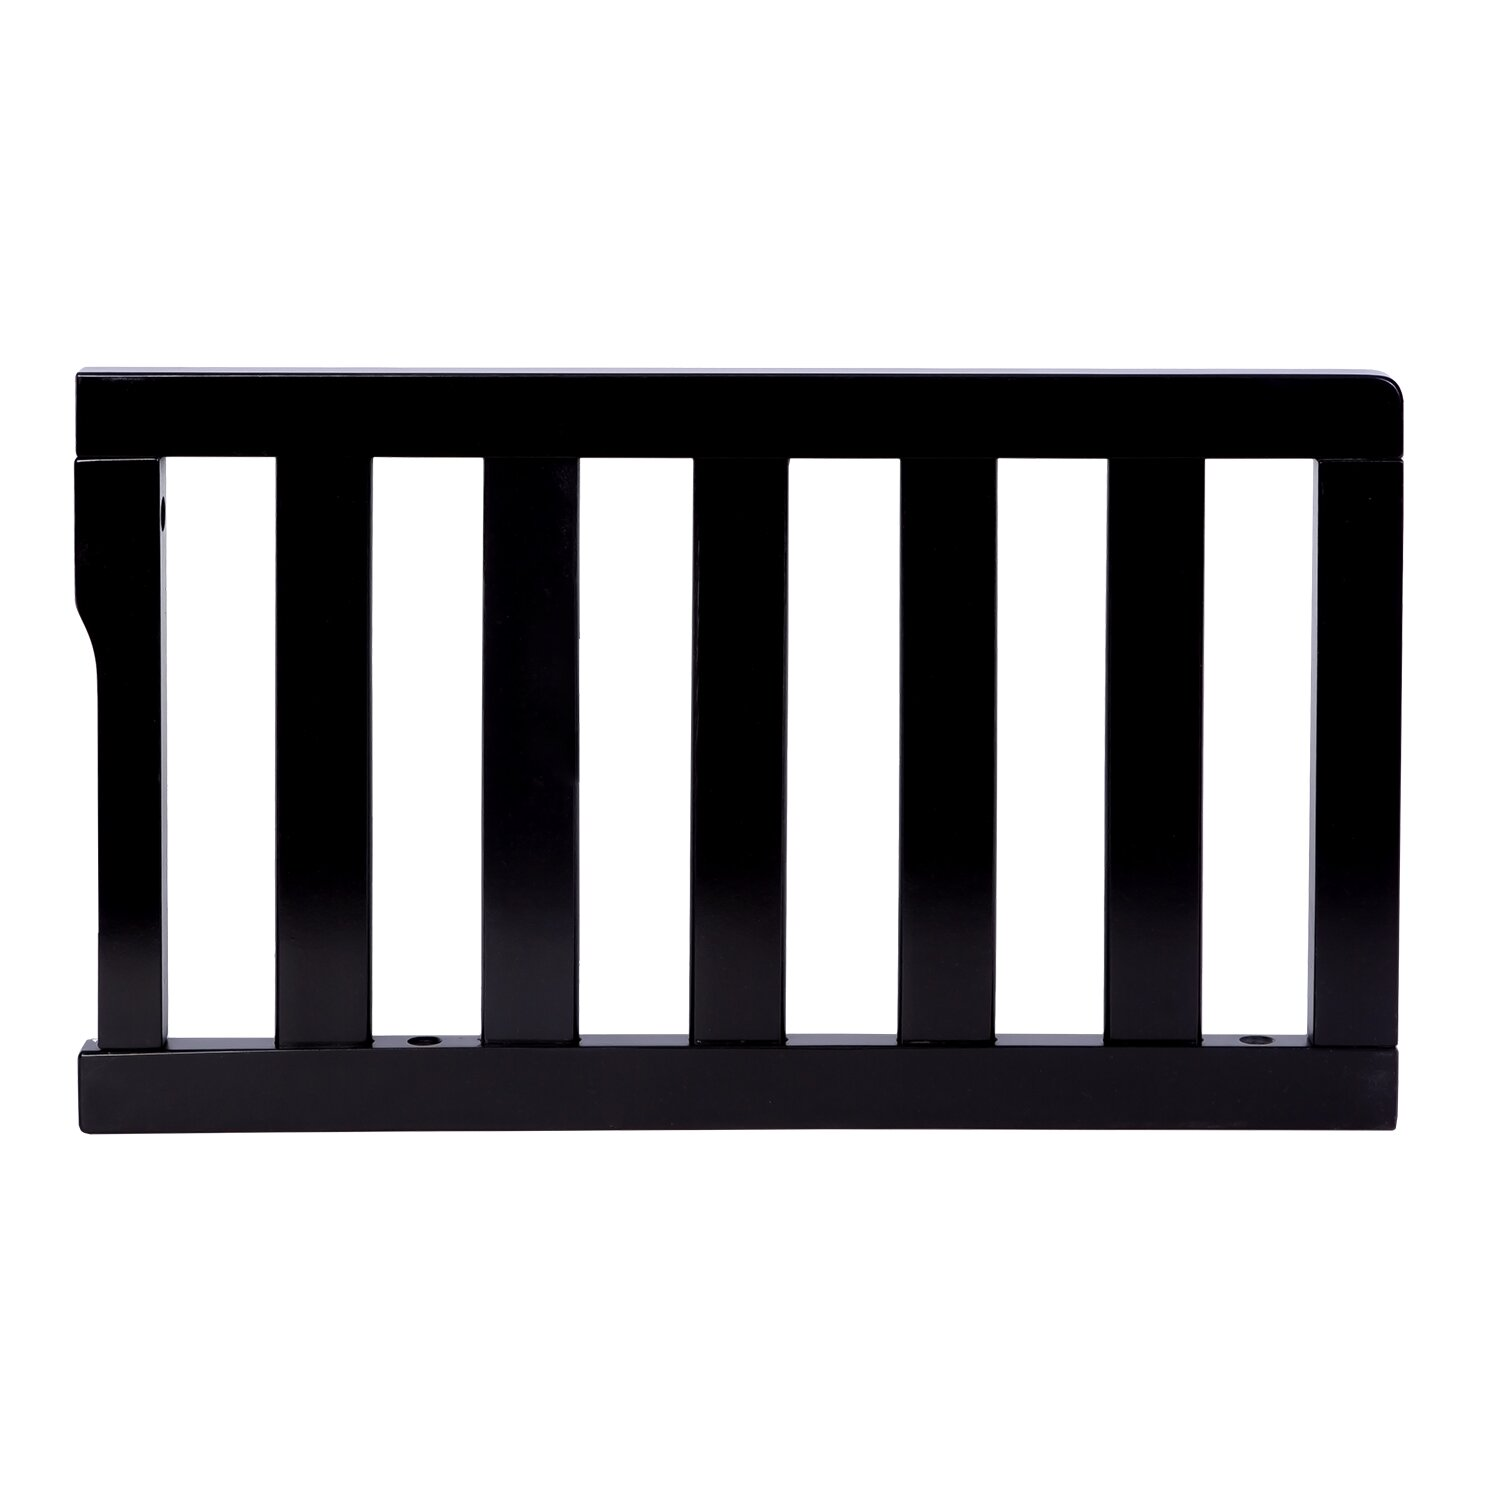 Brookfield fixed gate crib for sale - Universal Convertible Crib Toddler Guard Rail